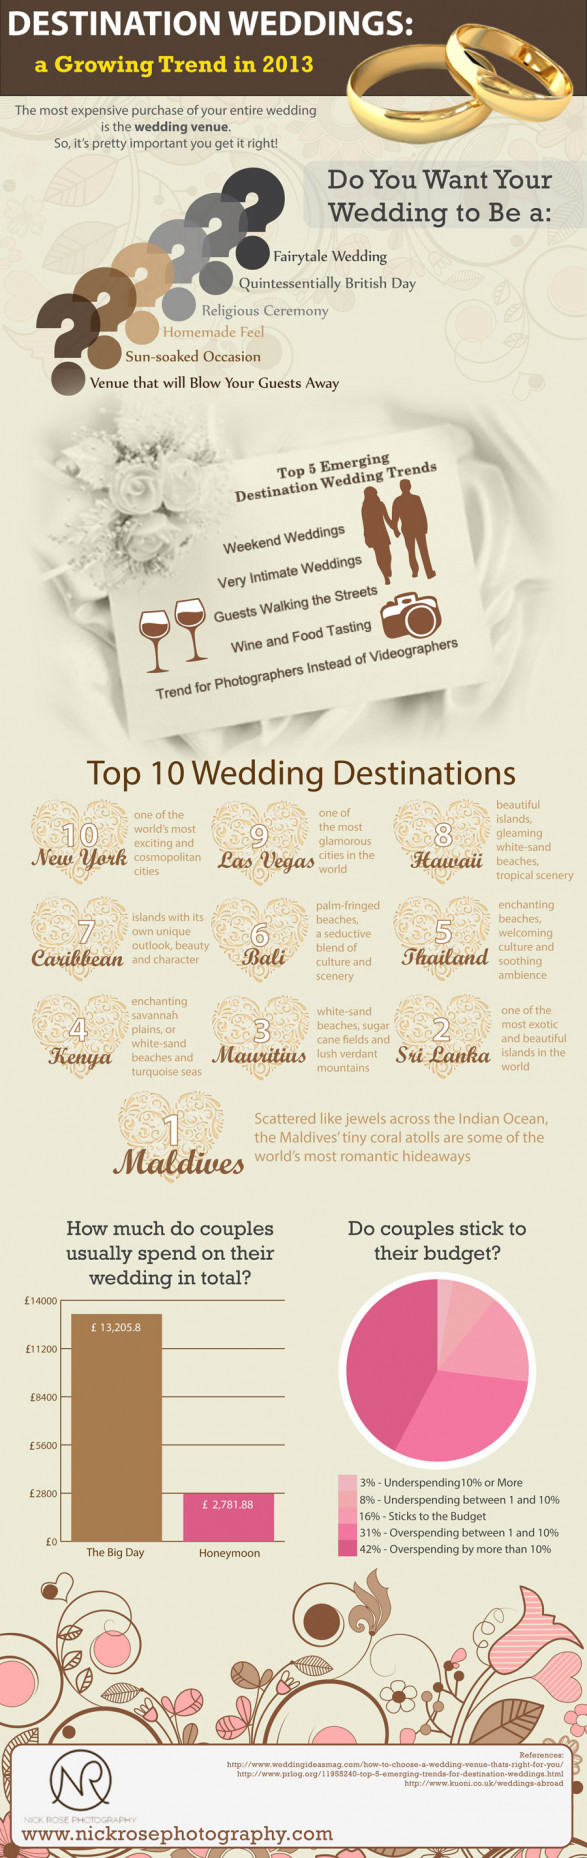 Destination Weddings: A Growing Trend in 2013